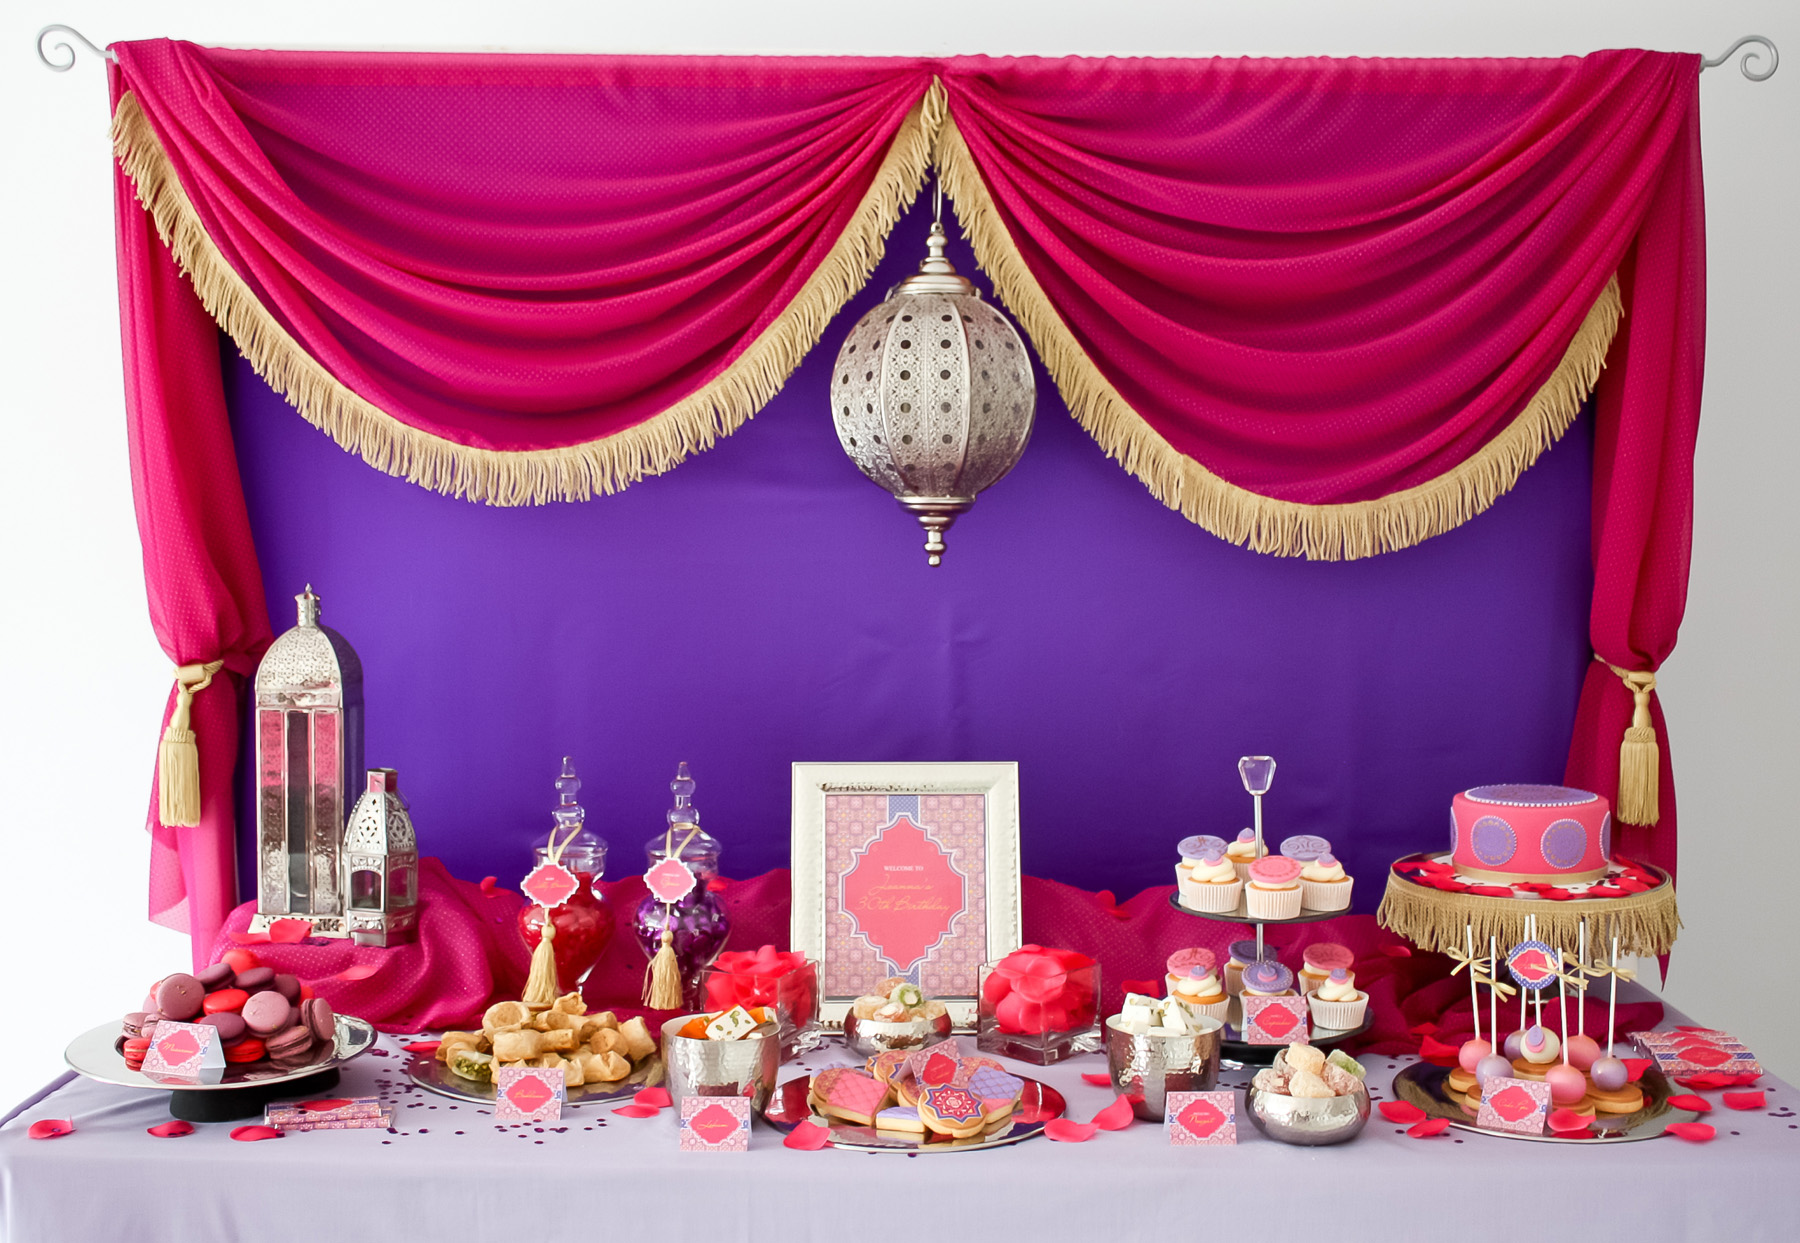 d6d470ac28b9 How to Throw a Moroccan Theme Party Like a Pro  Design Pictures ...